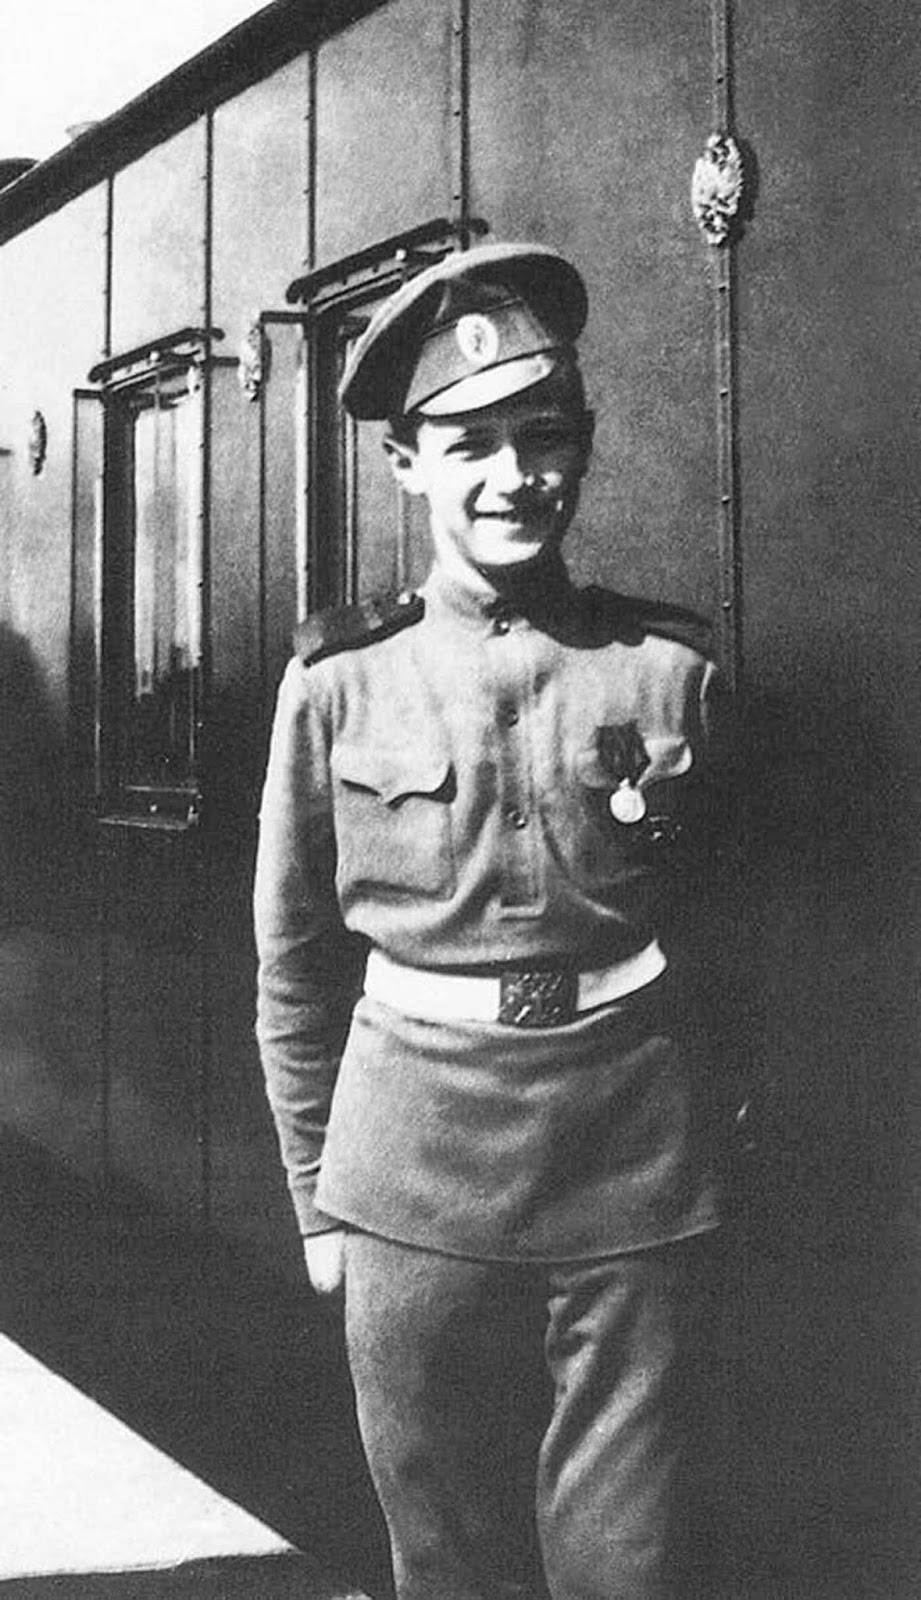 A smiling Tsesarevich Alexis standing on the platform in front of the Imperial Train.